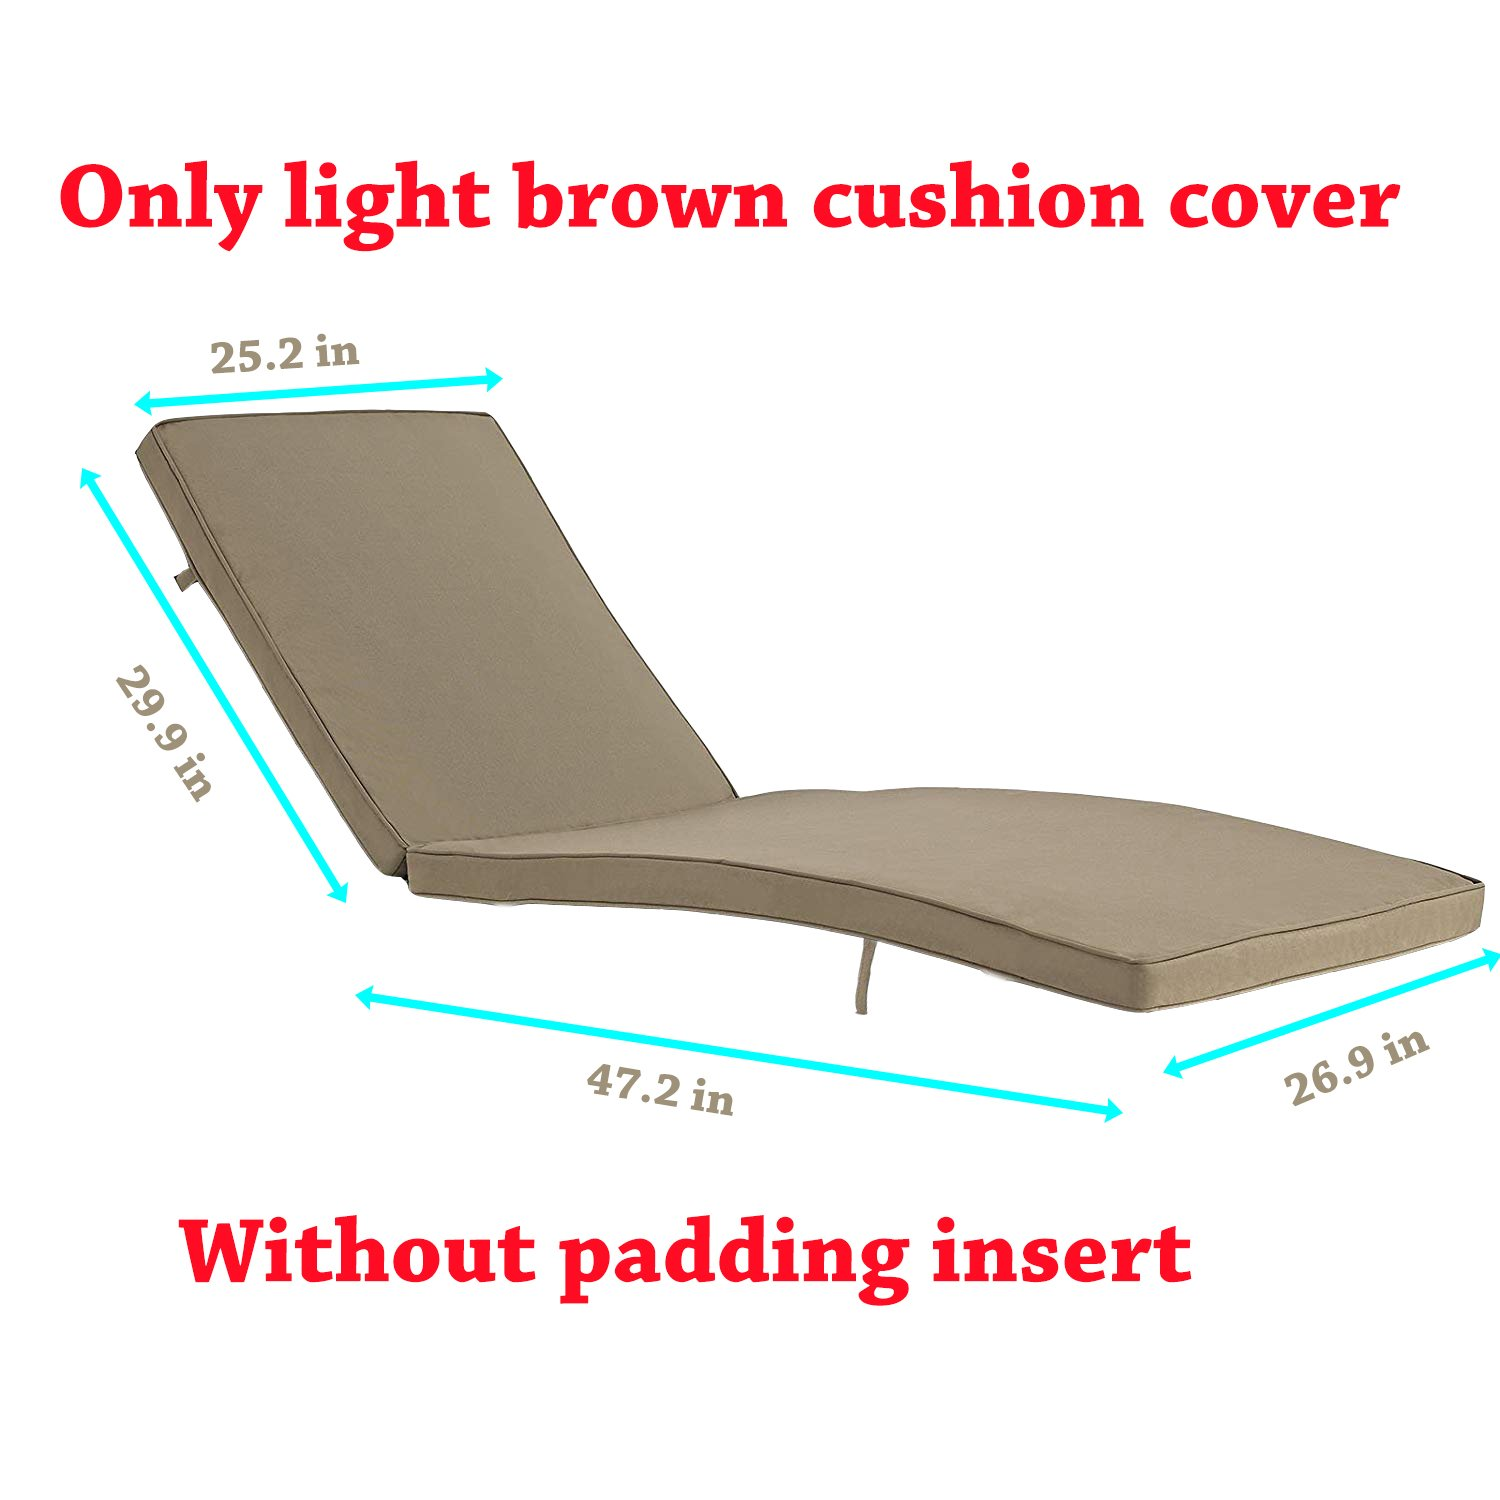 Do4U Adjustable Patio Outdoor Furniture Rattan Wicker Chaise Lounge Chair Sofa Couch Bed with Cushion (1 Pcs Light Brown Cushion Cover)